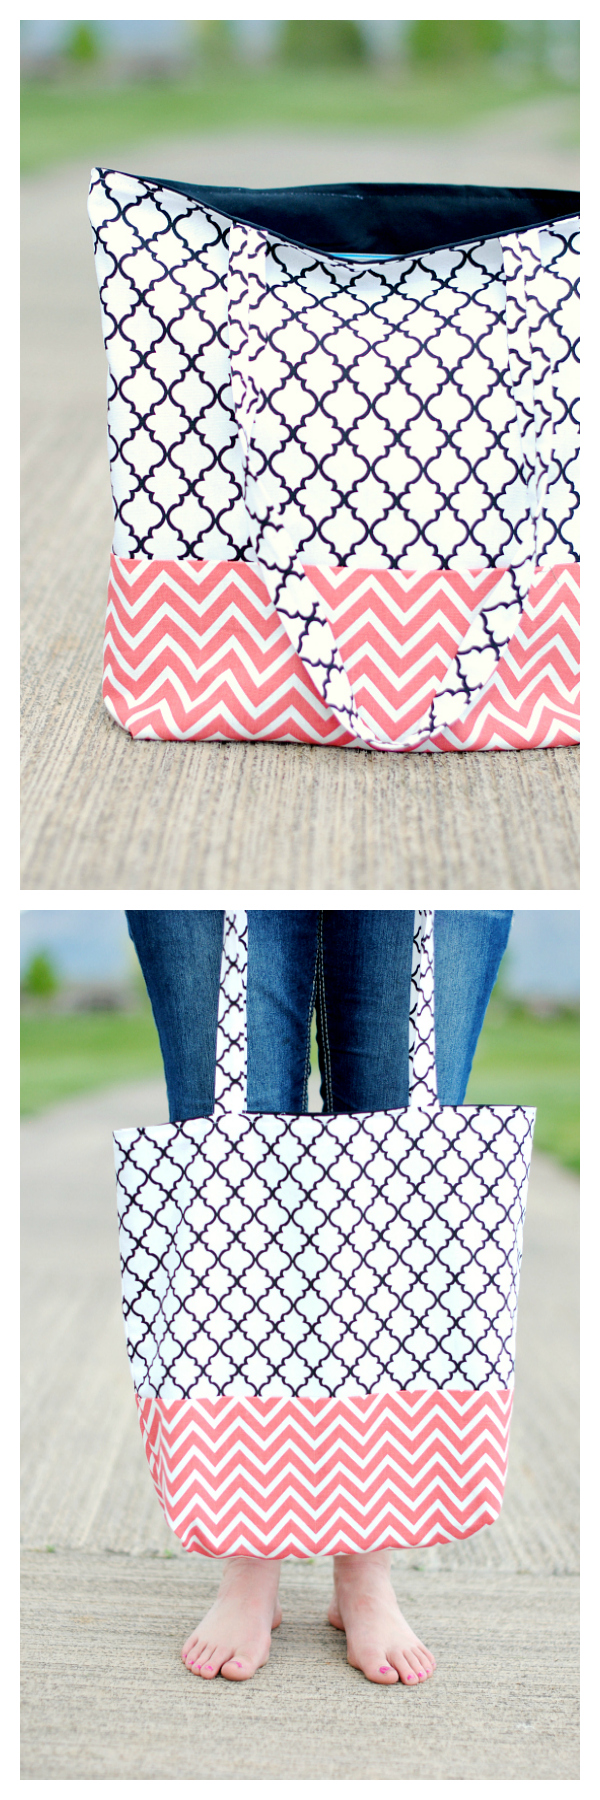 How to Make a Bag: Follow this easy and simple tote bag pattern to sew up a bag that's perfect for anything you need to carry. #totebag #patterns #sew #sewing #bagpatterns